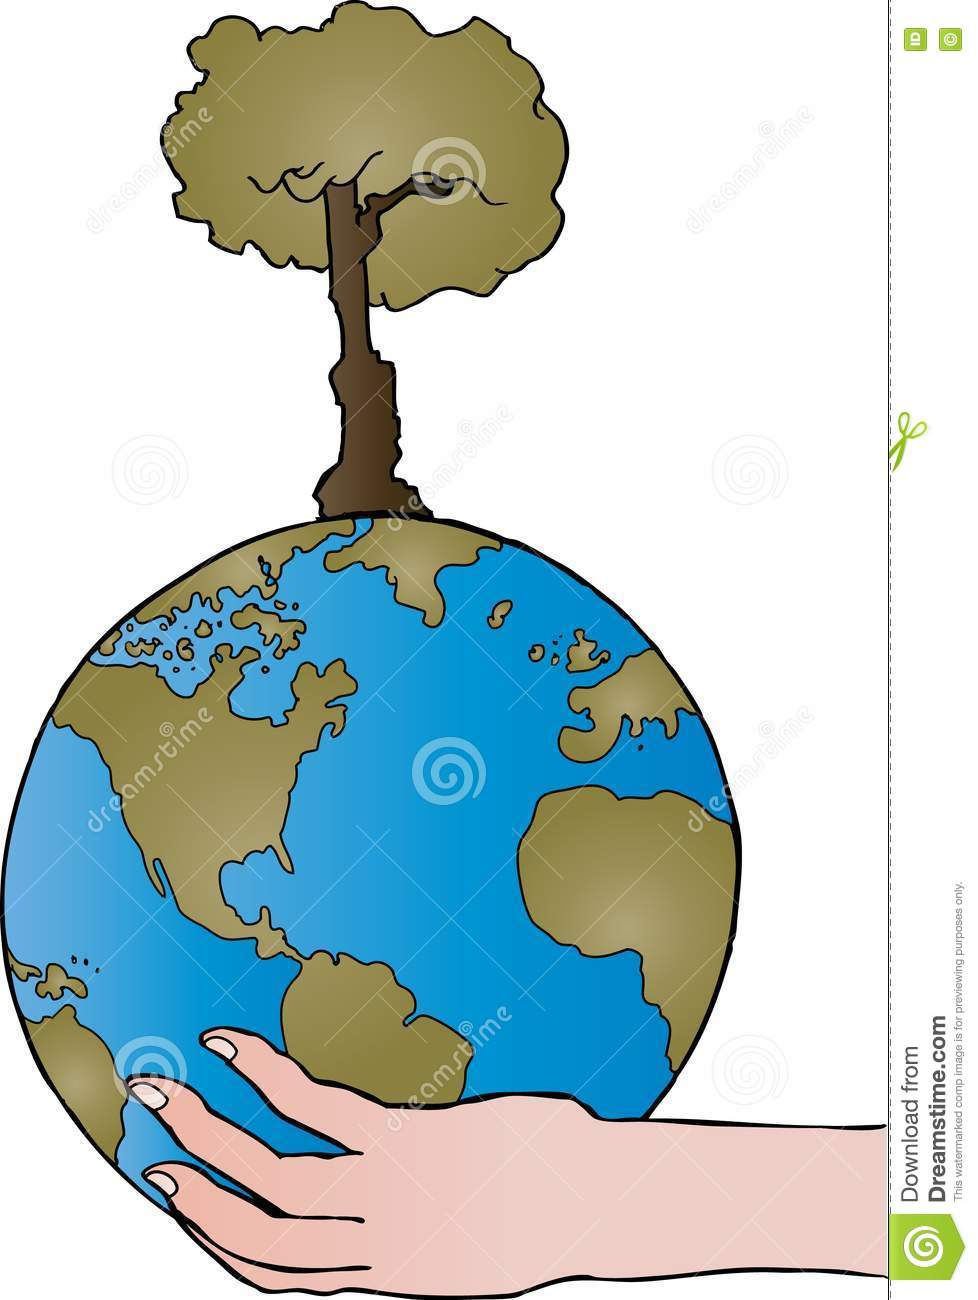 Nurture the world stock vector illustration of metaphor 16492845 - Nurture images download ...